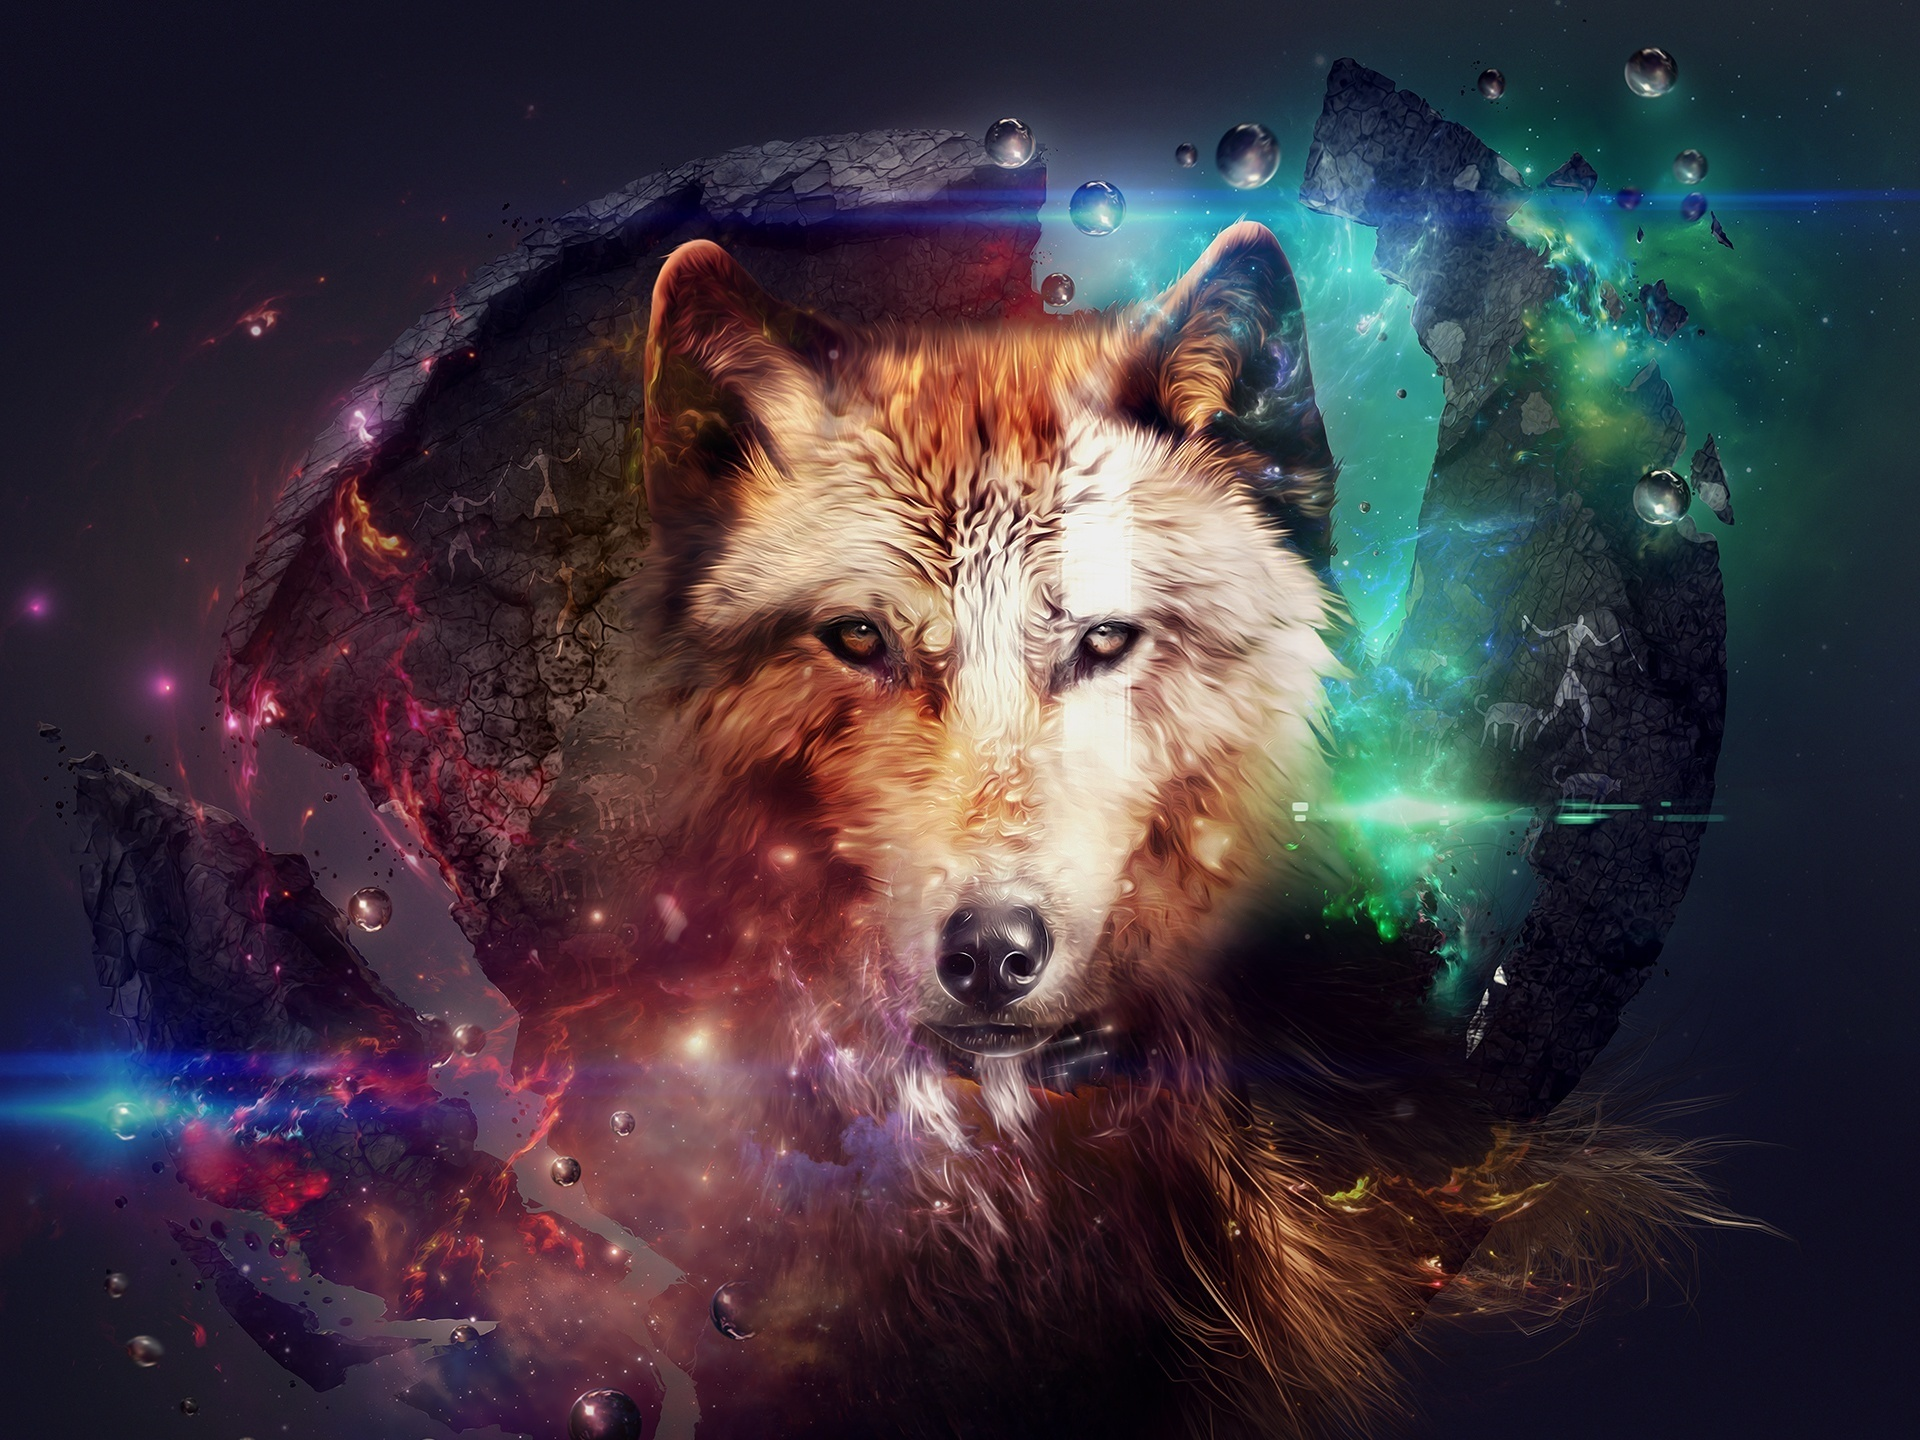 Wallpaper Abstract Design Wolf Collage Space Colorful